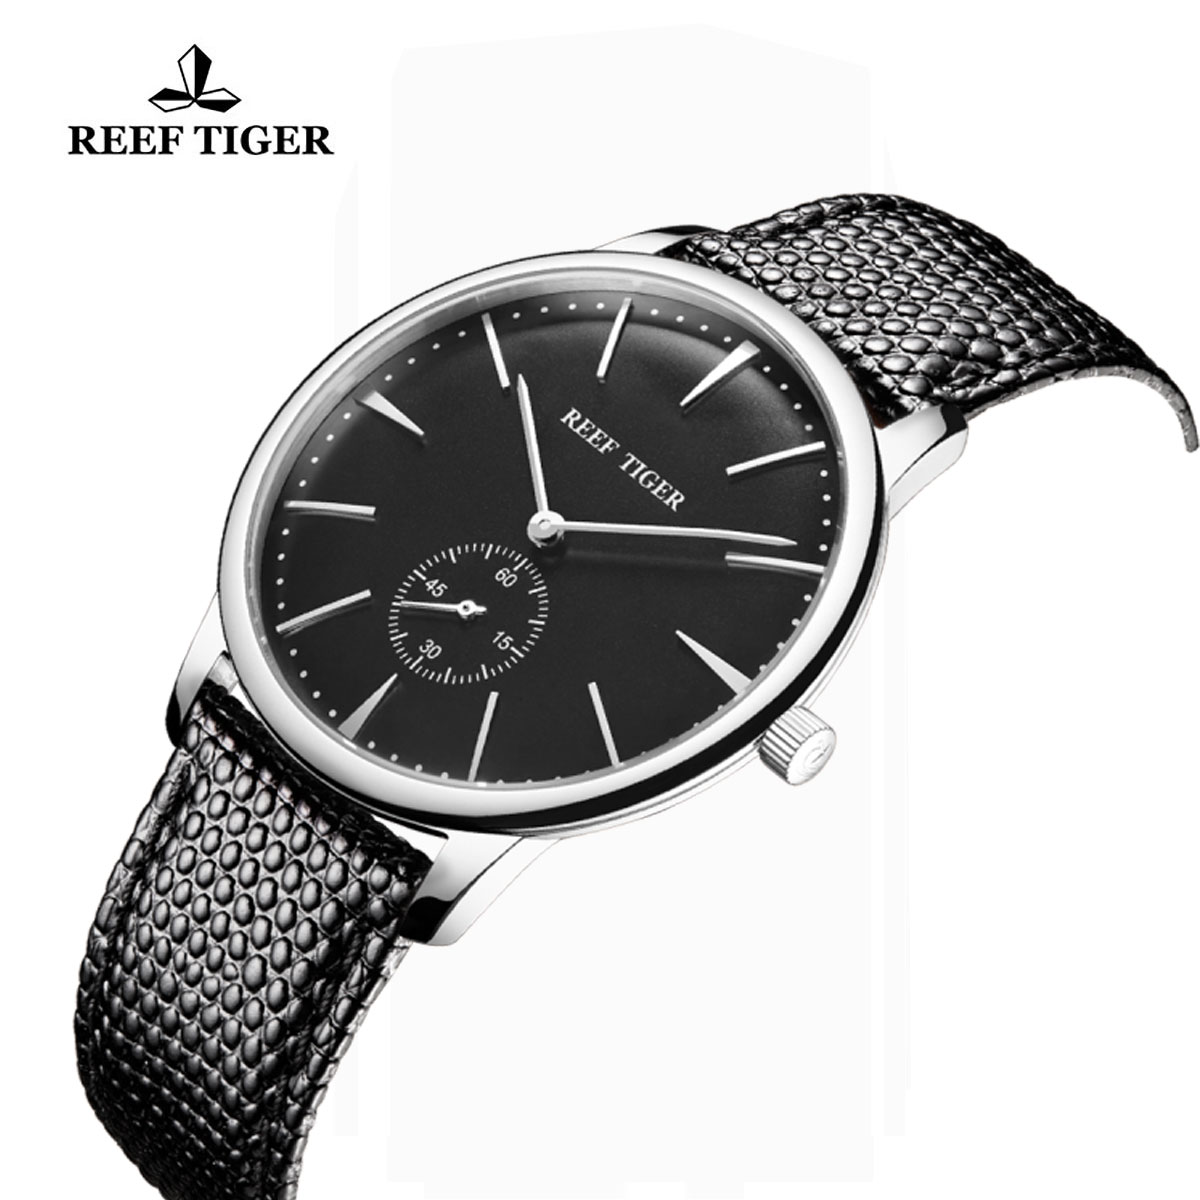 Reef Tiger Vintage Casual Watch Black Dial Stainless Steel Calfskin Leather RGA820-YBB-G